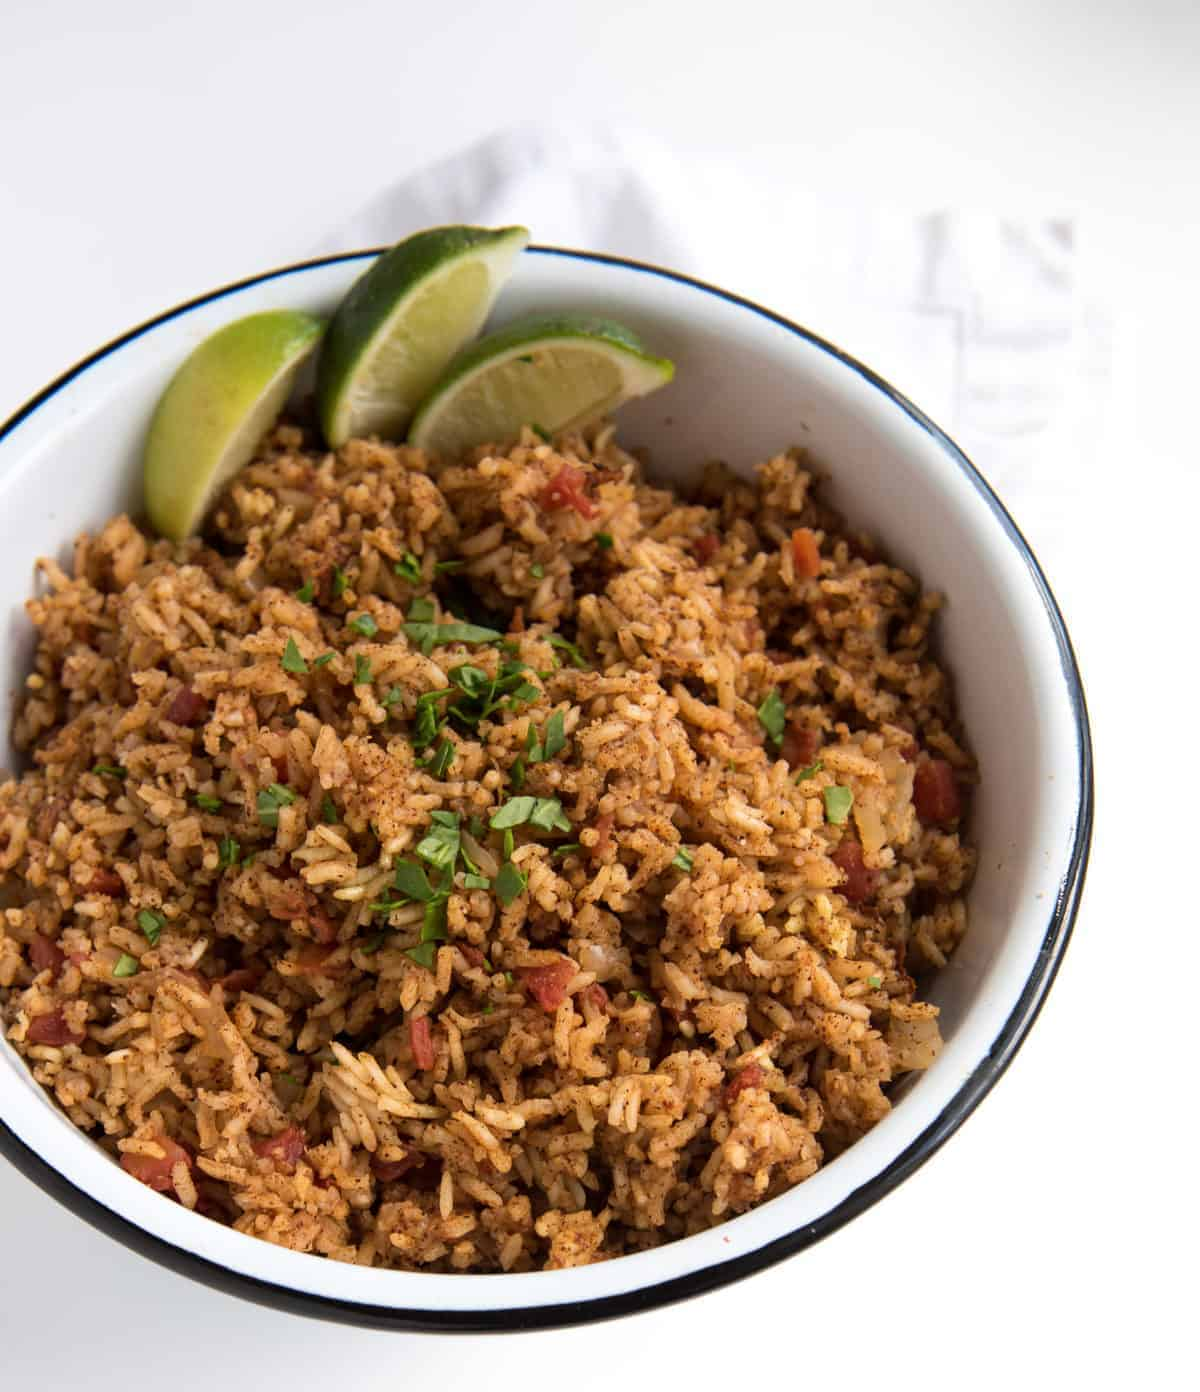 Easy Spanish Rice Recipe Made In The Rice Cooker With A Few Simple  Ingredients (including